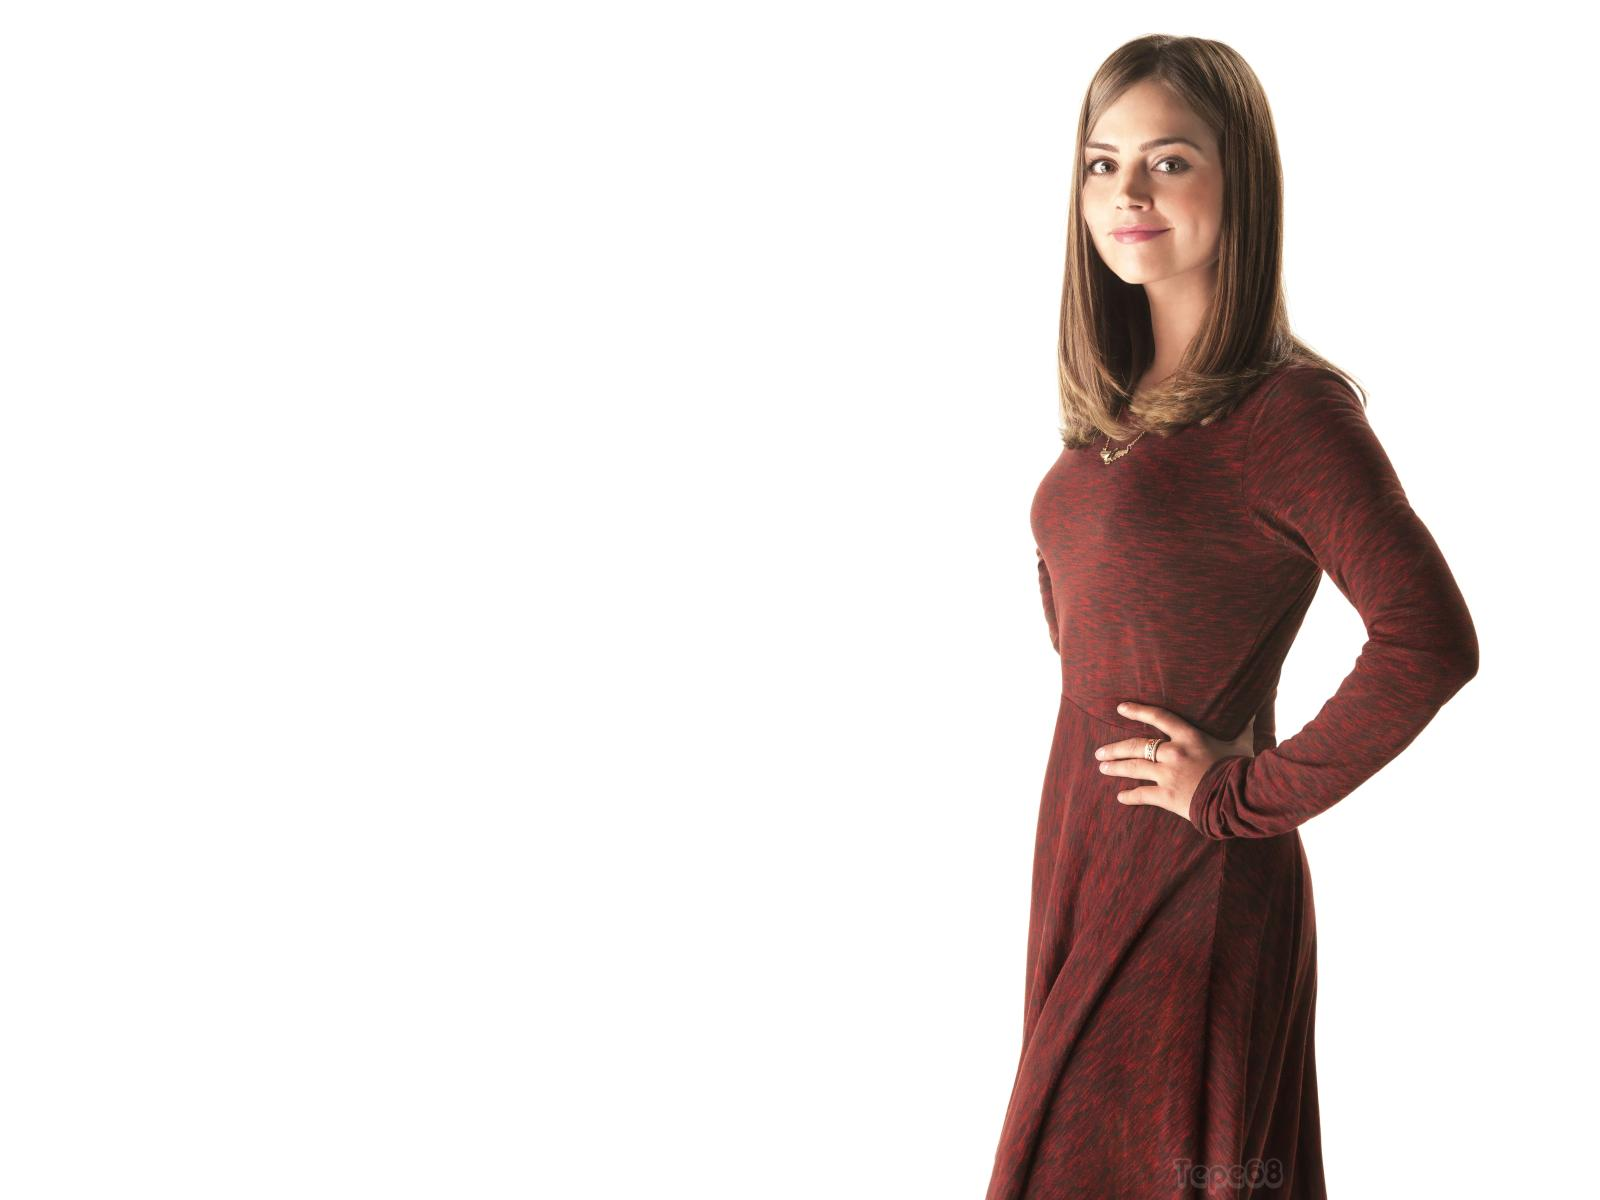 1600x1200 - Jenna-Louise Coleman Wallpapers 17